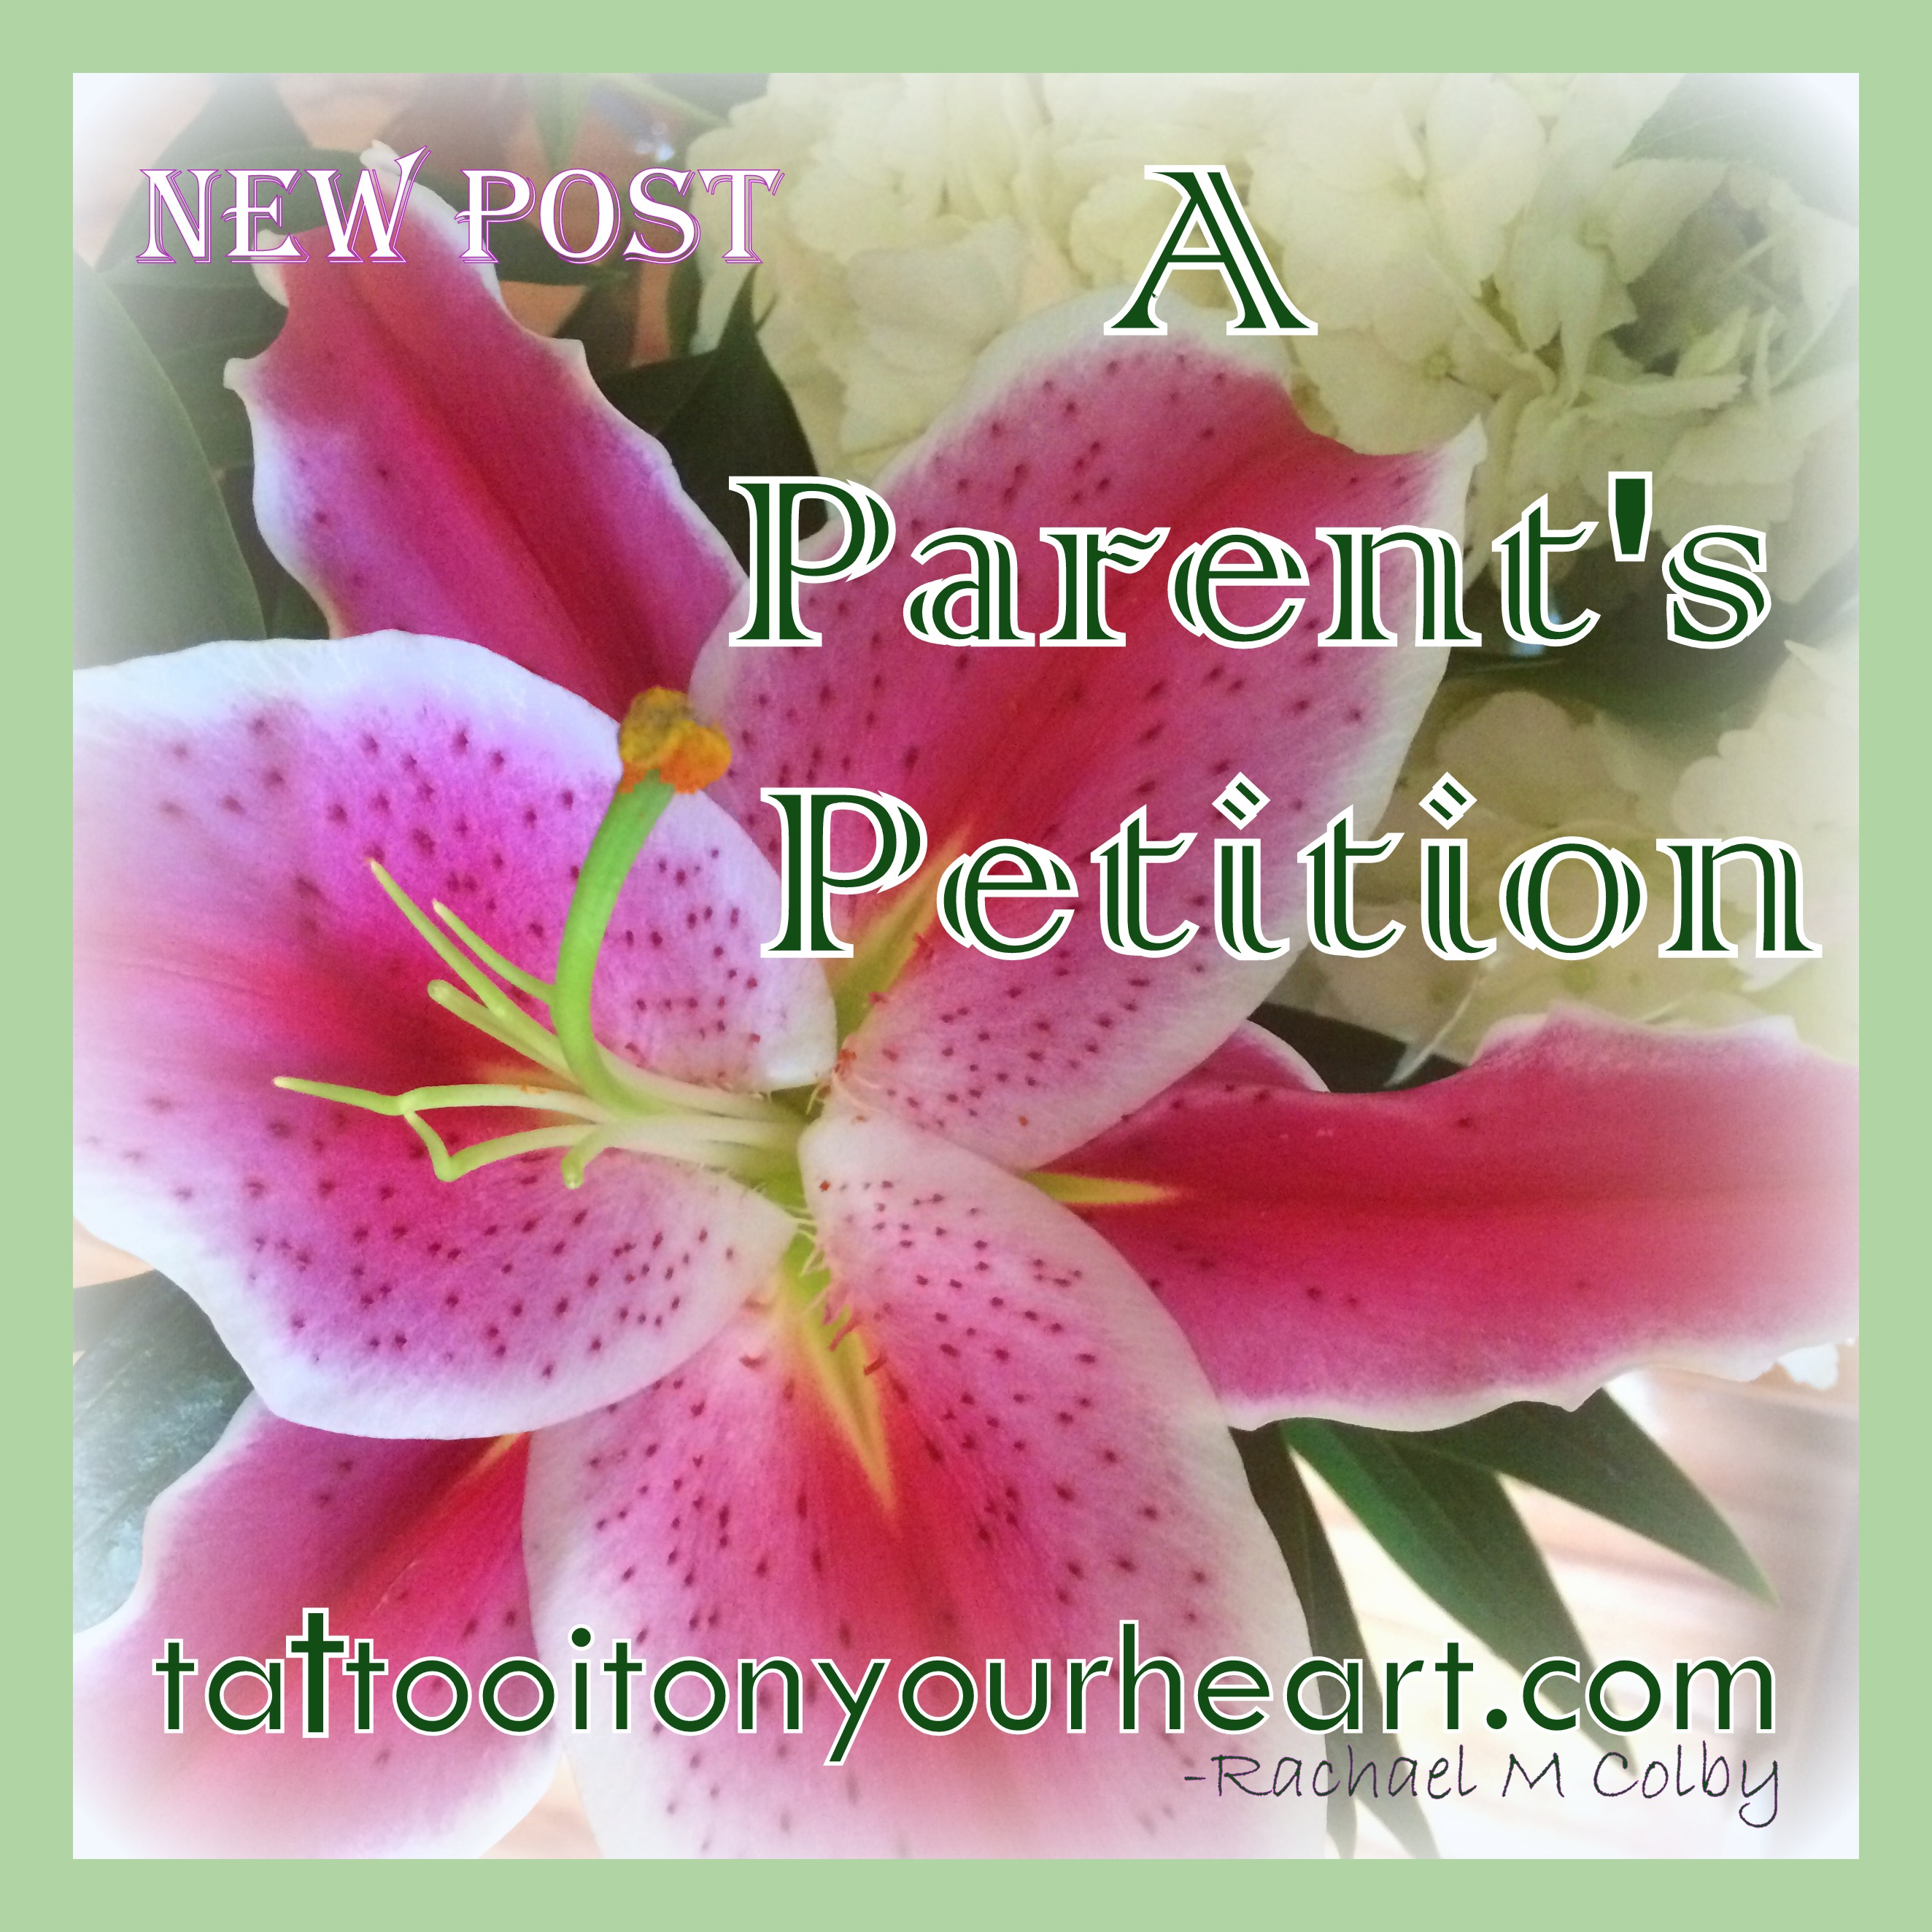 Tattoo_It_On_Your_Heart_Rachael_M_Colby_A_Parent's_Petition